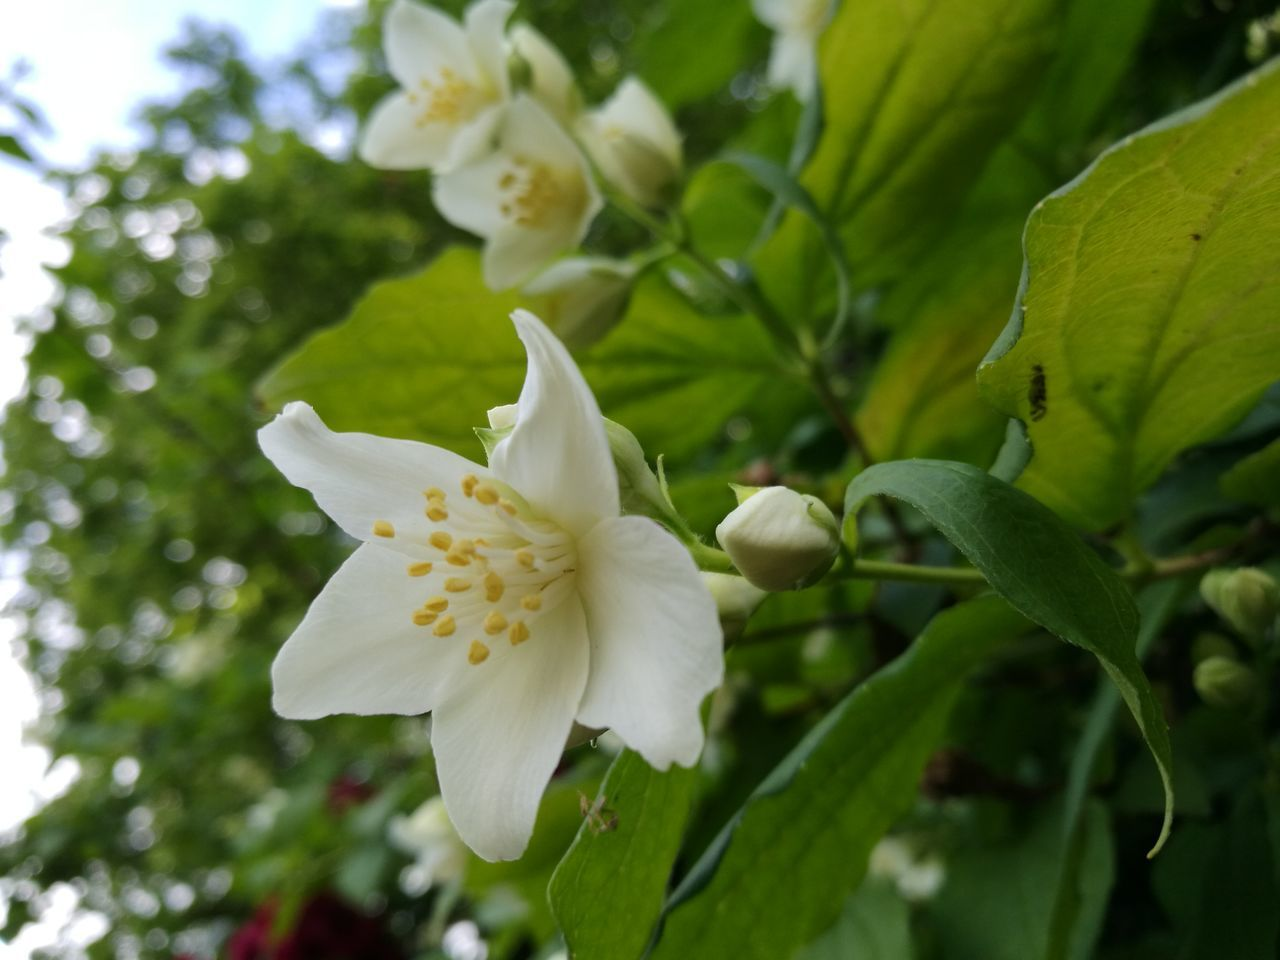 flower, petal, white color, nature, beauty in nature, fragility, freshness, growth, flower head, leaf, close-up, no people, day, outdoors, plant, blooming